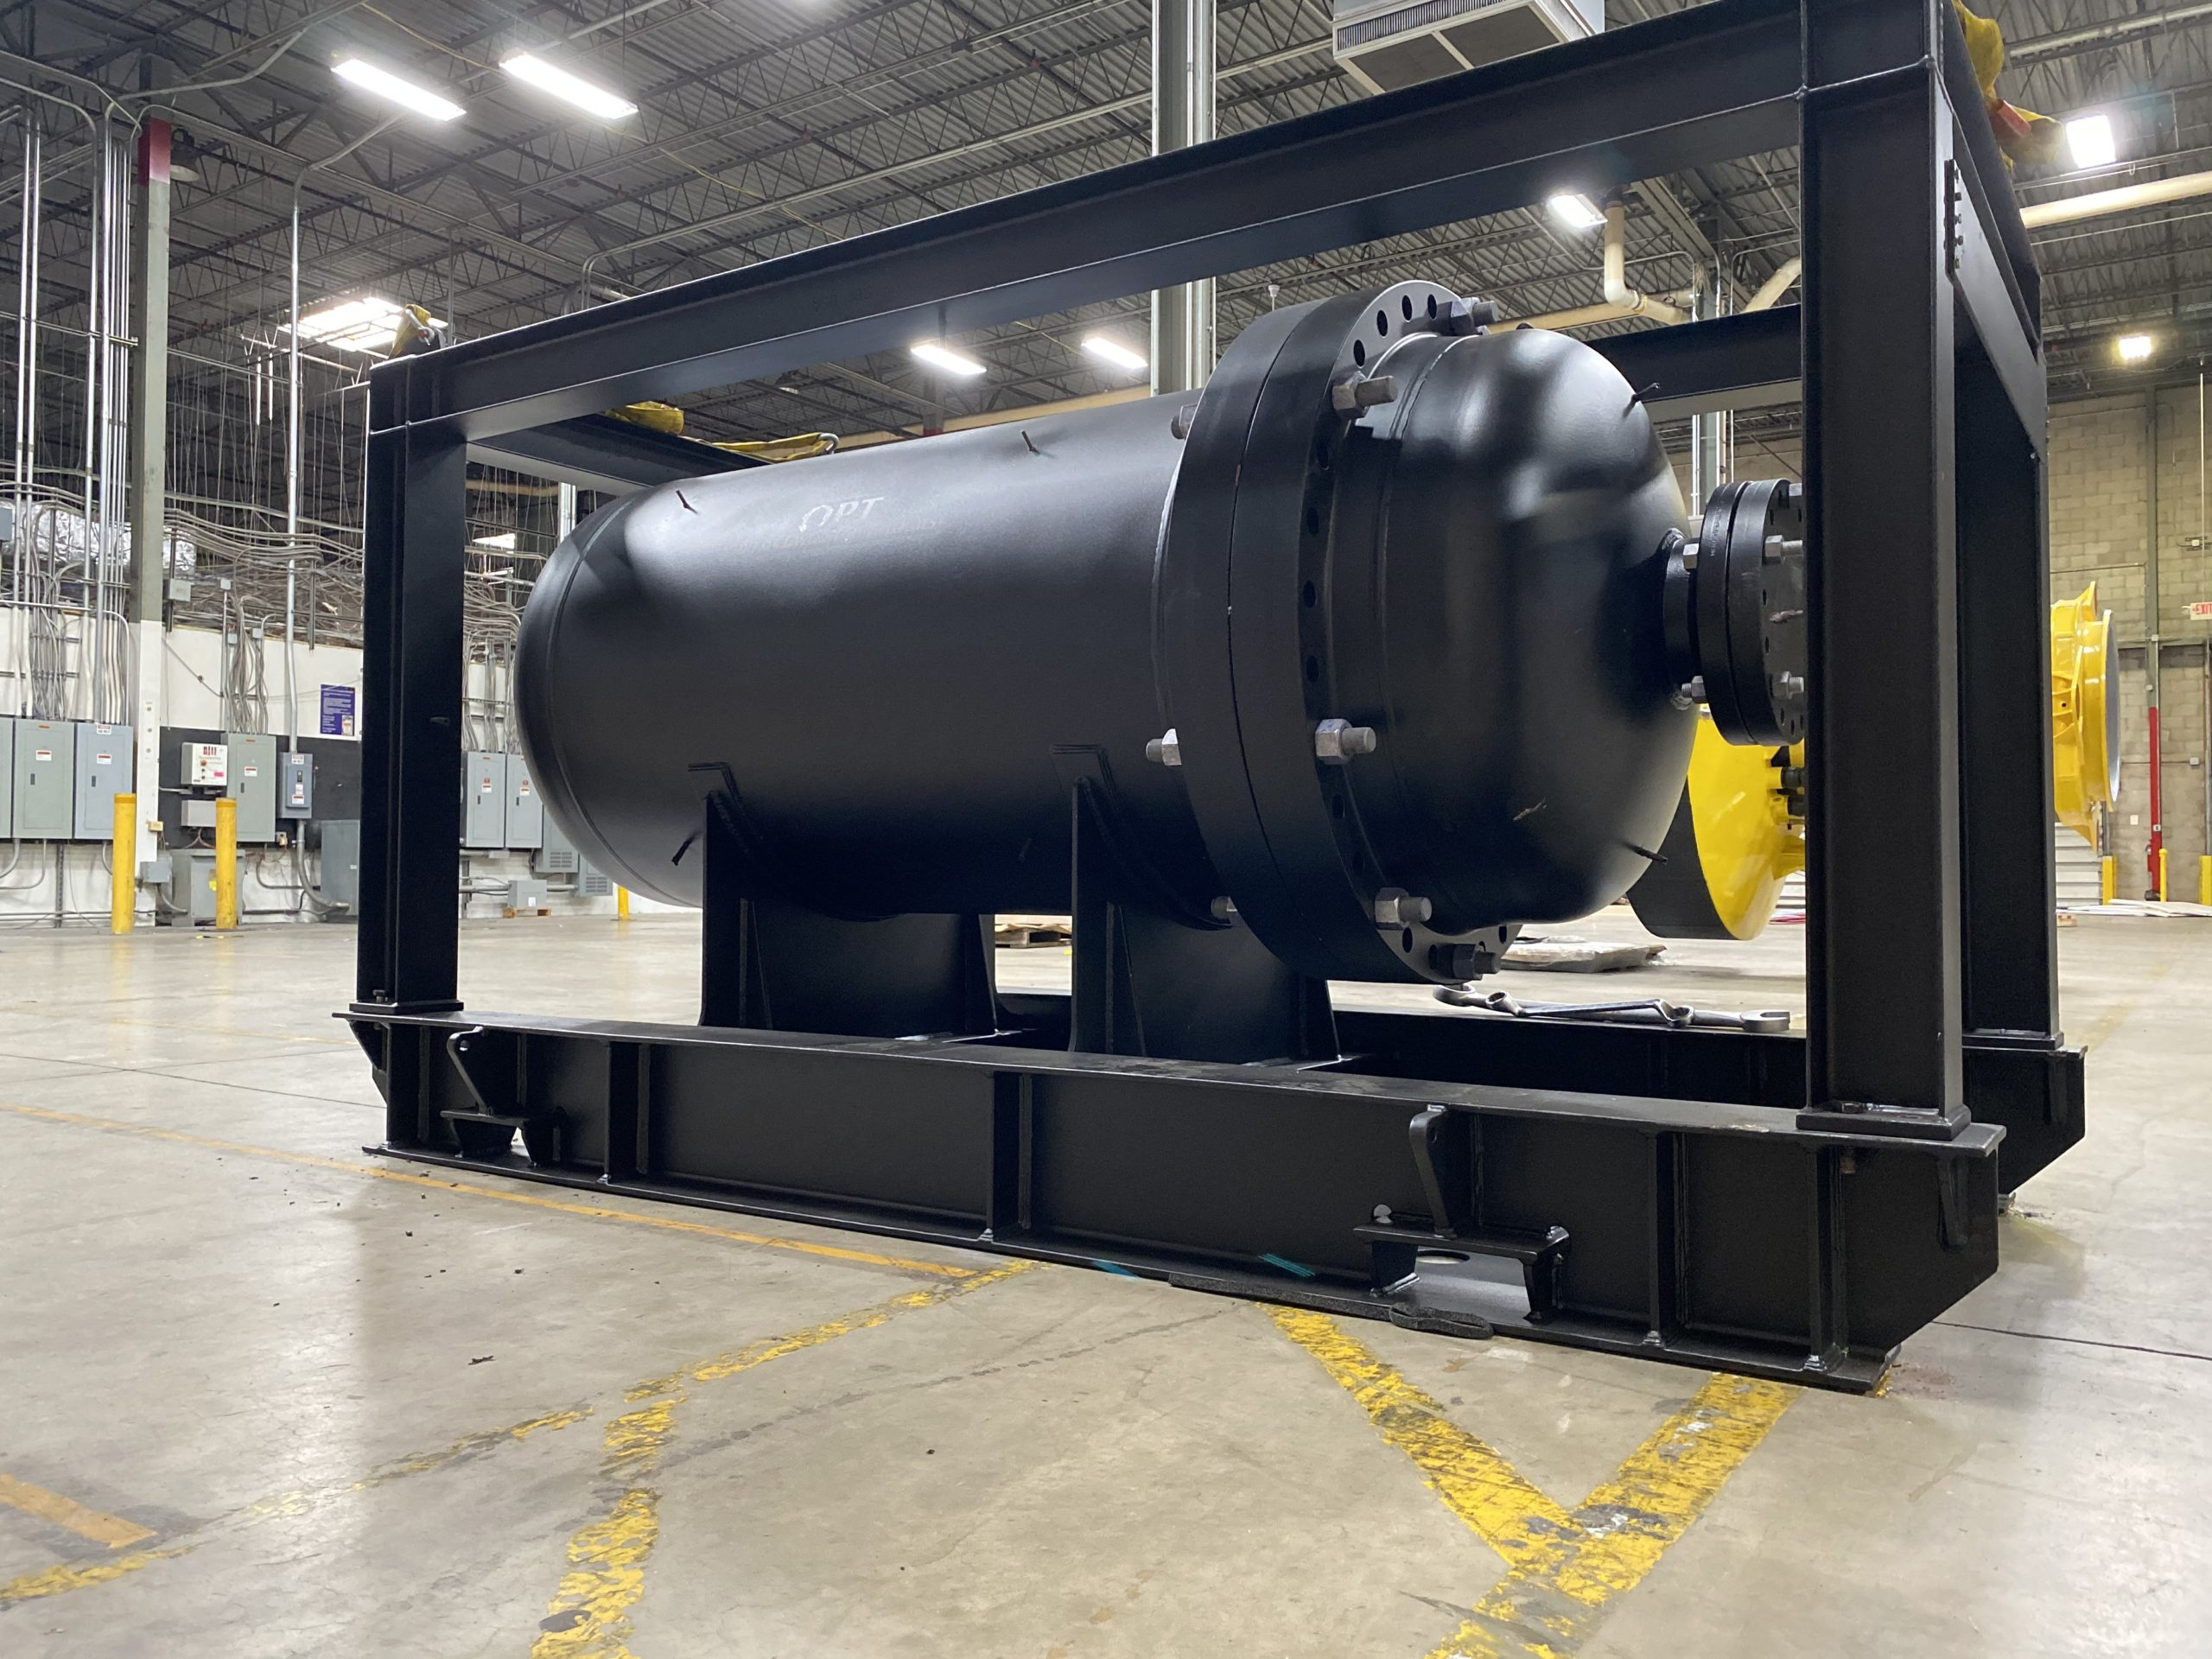 OPT introduces new Subsea Battery solution